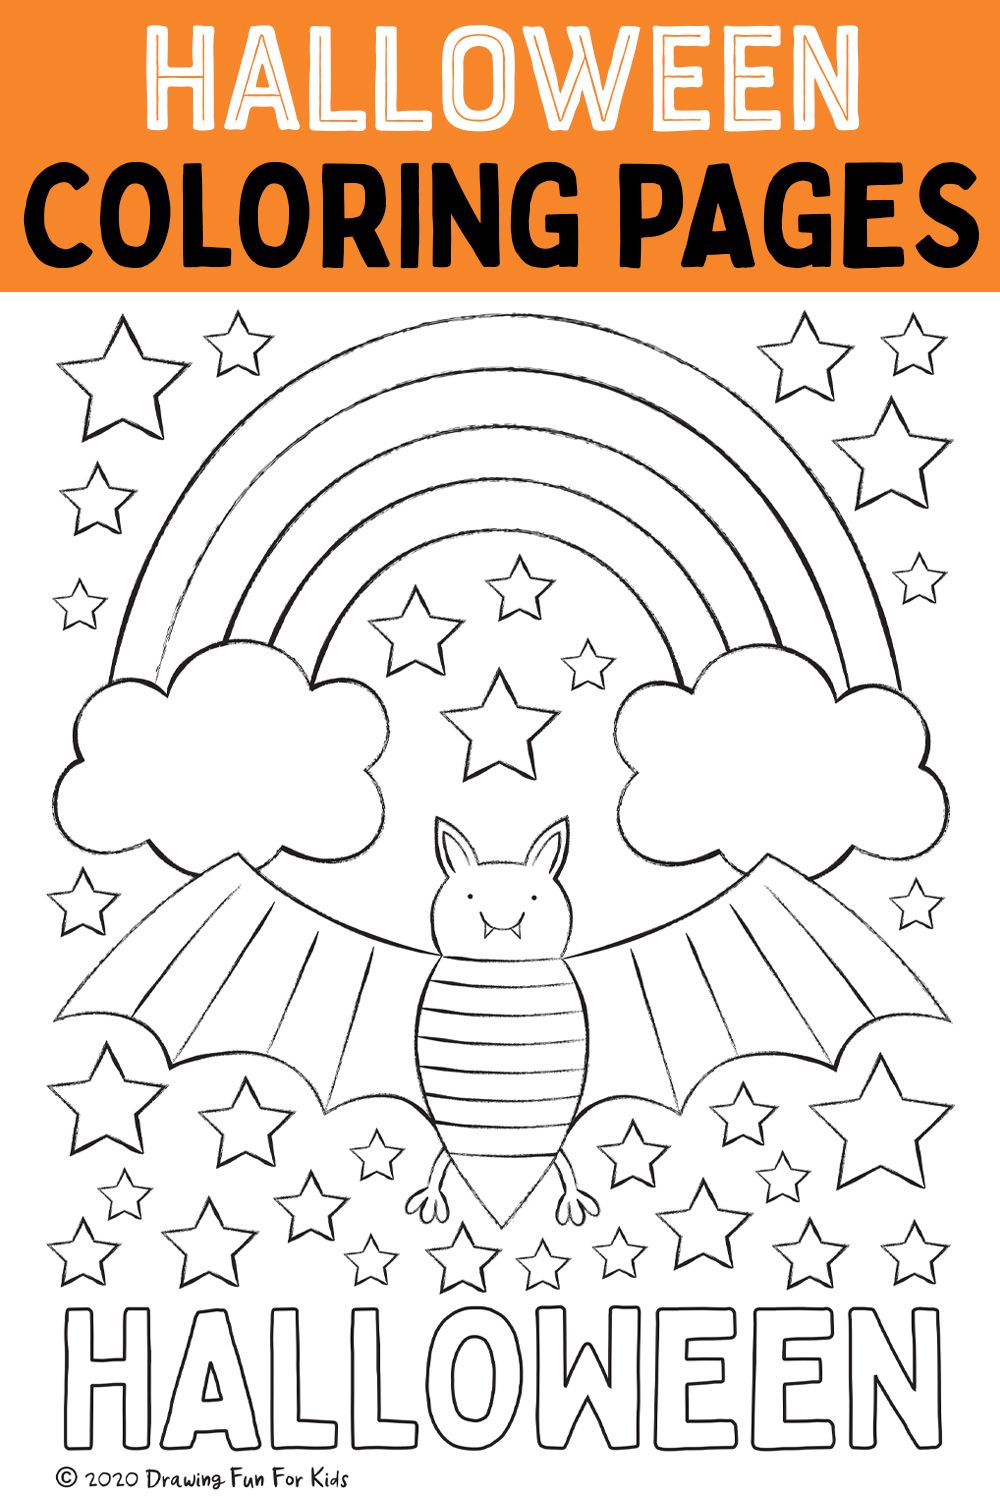 Halloween Coloring Pages In 2021 Halloween Coloring Halloween Coloring Pages Coloring Sheets For Kids Kindergartenworksheets halloween coloring pages